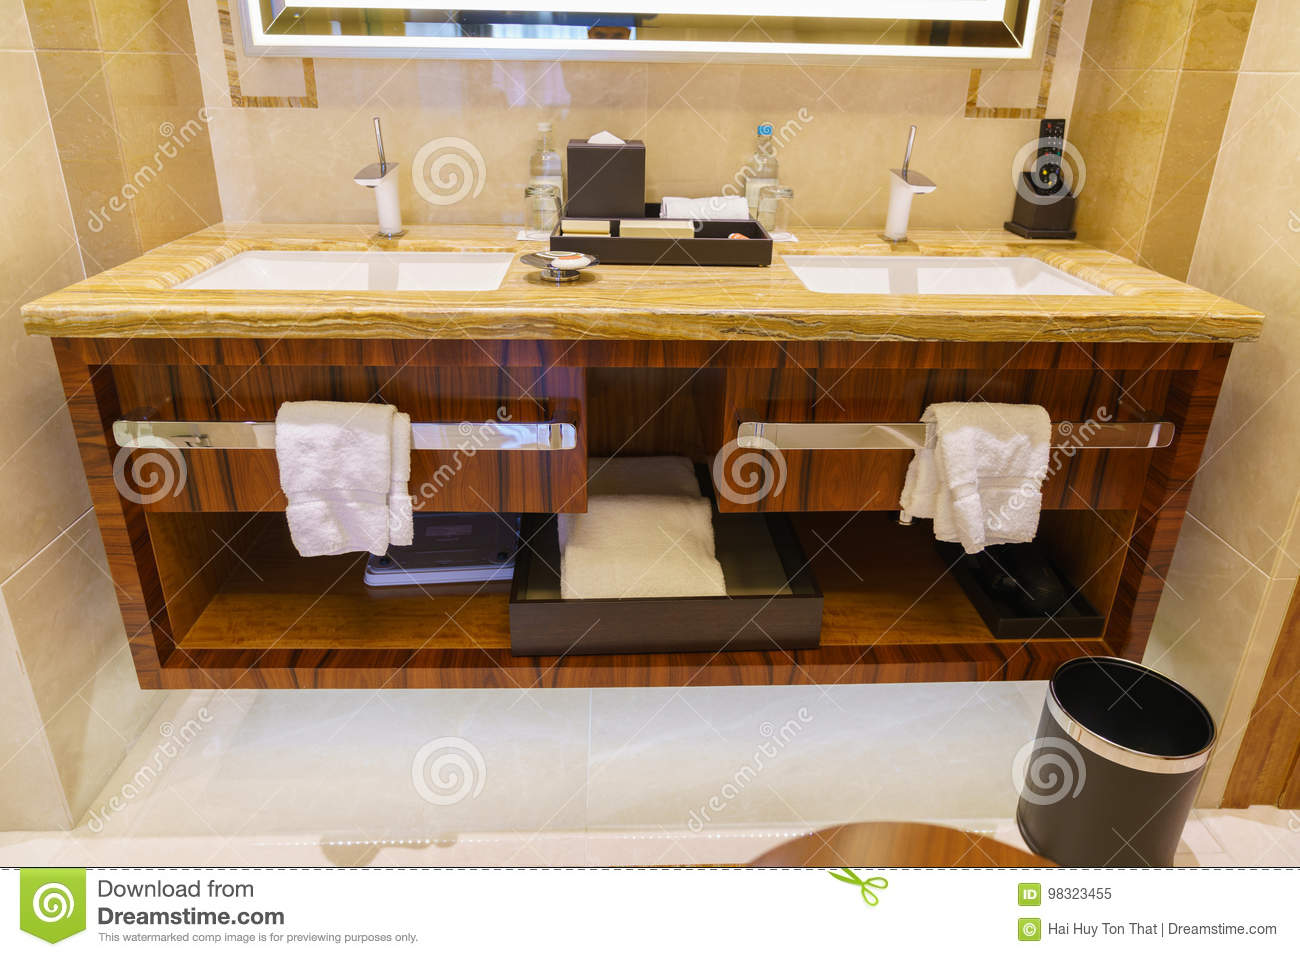 Charmant Download Bathroom Interior Of Brand New Luxury Resort Hotel Stock Image    Image Of Ceiling,